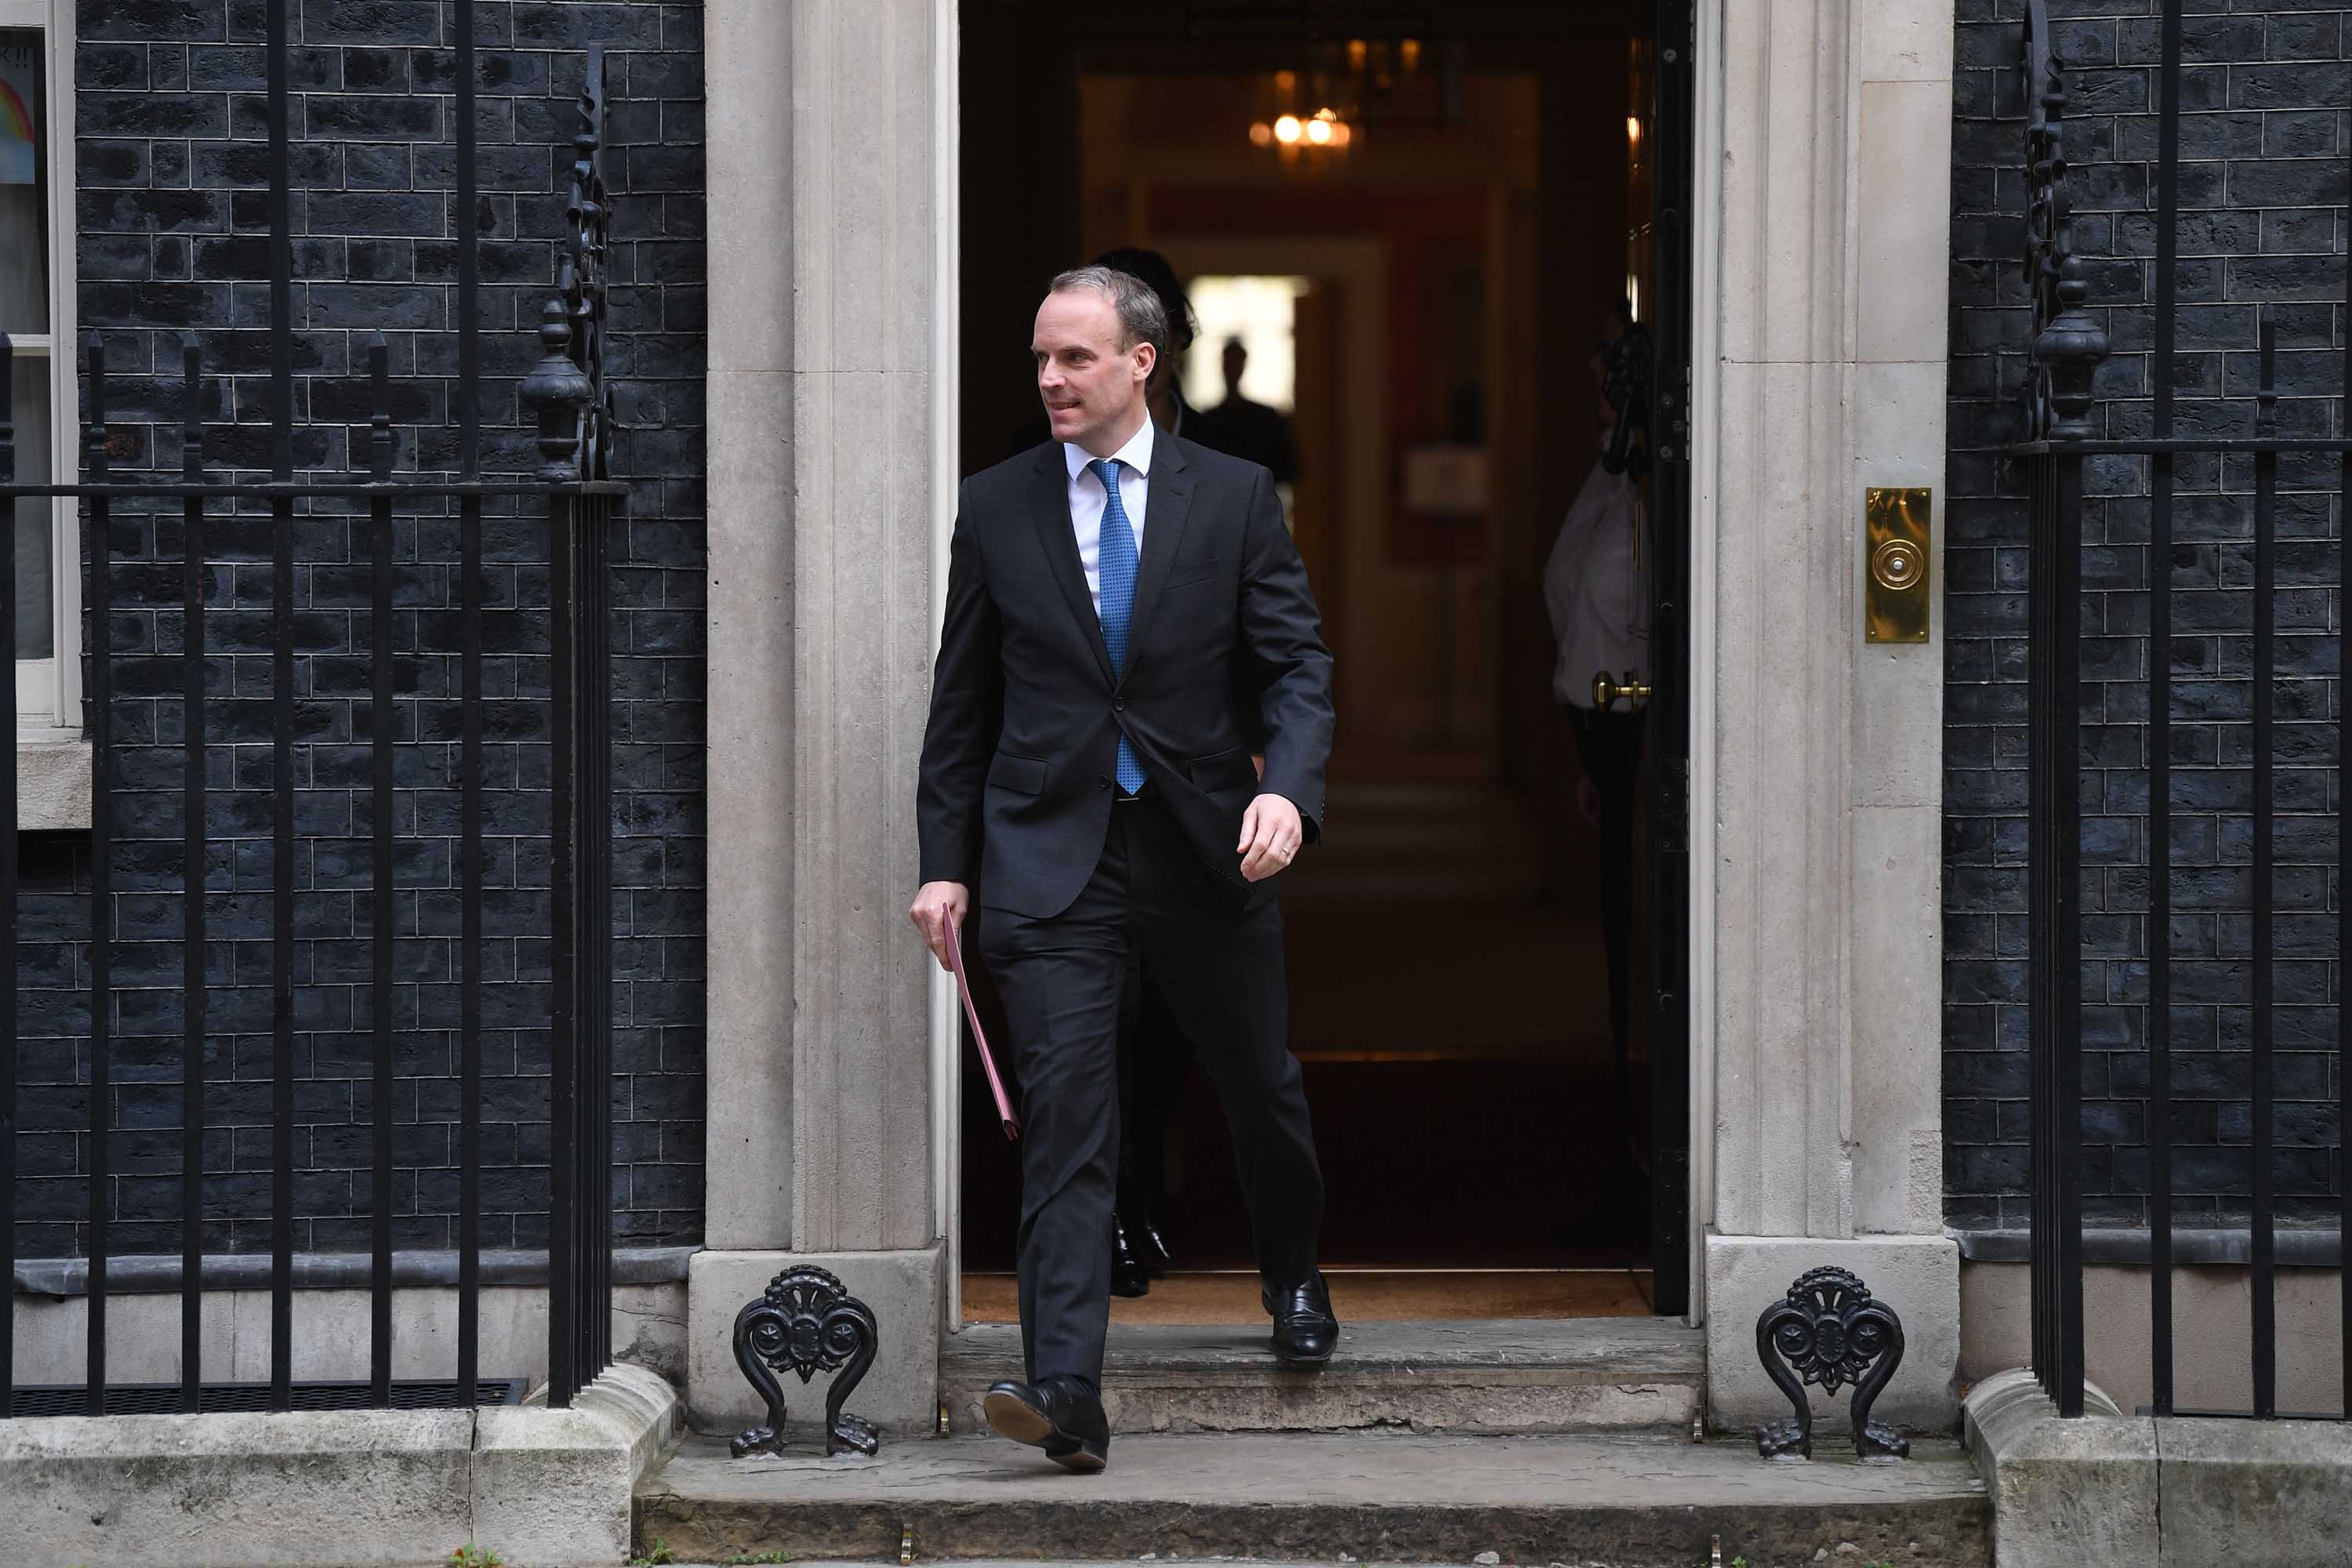 Britain's Foreign Secretary Dominic Raab leaves number 10 Downing street in central London after the daily Covid-19 briefing on April 15. Raab, who is filling in for Prime Minister Boris Johnson, will participate in a G7 leaders conference call on Thursday.